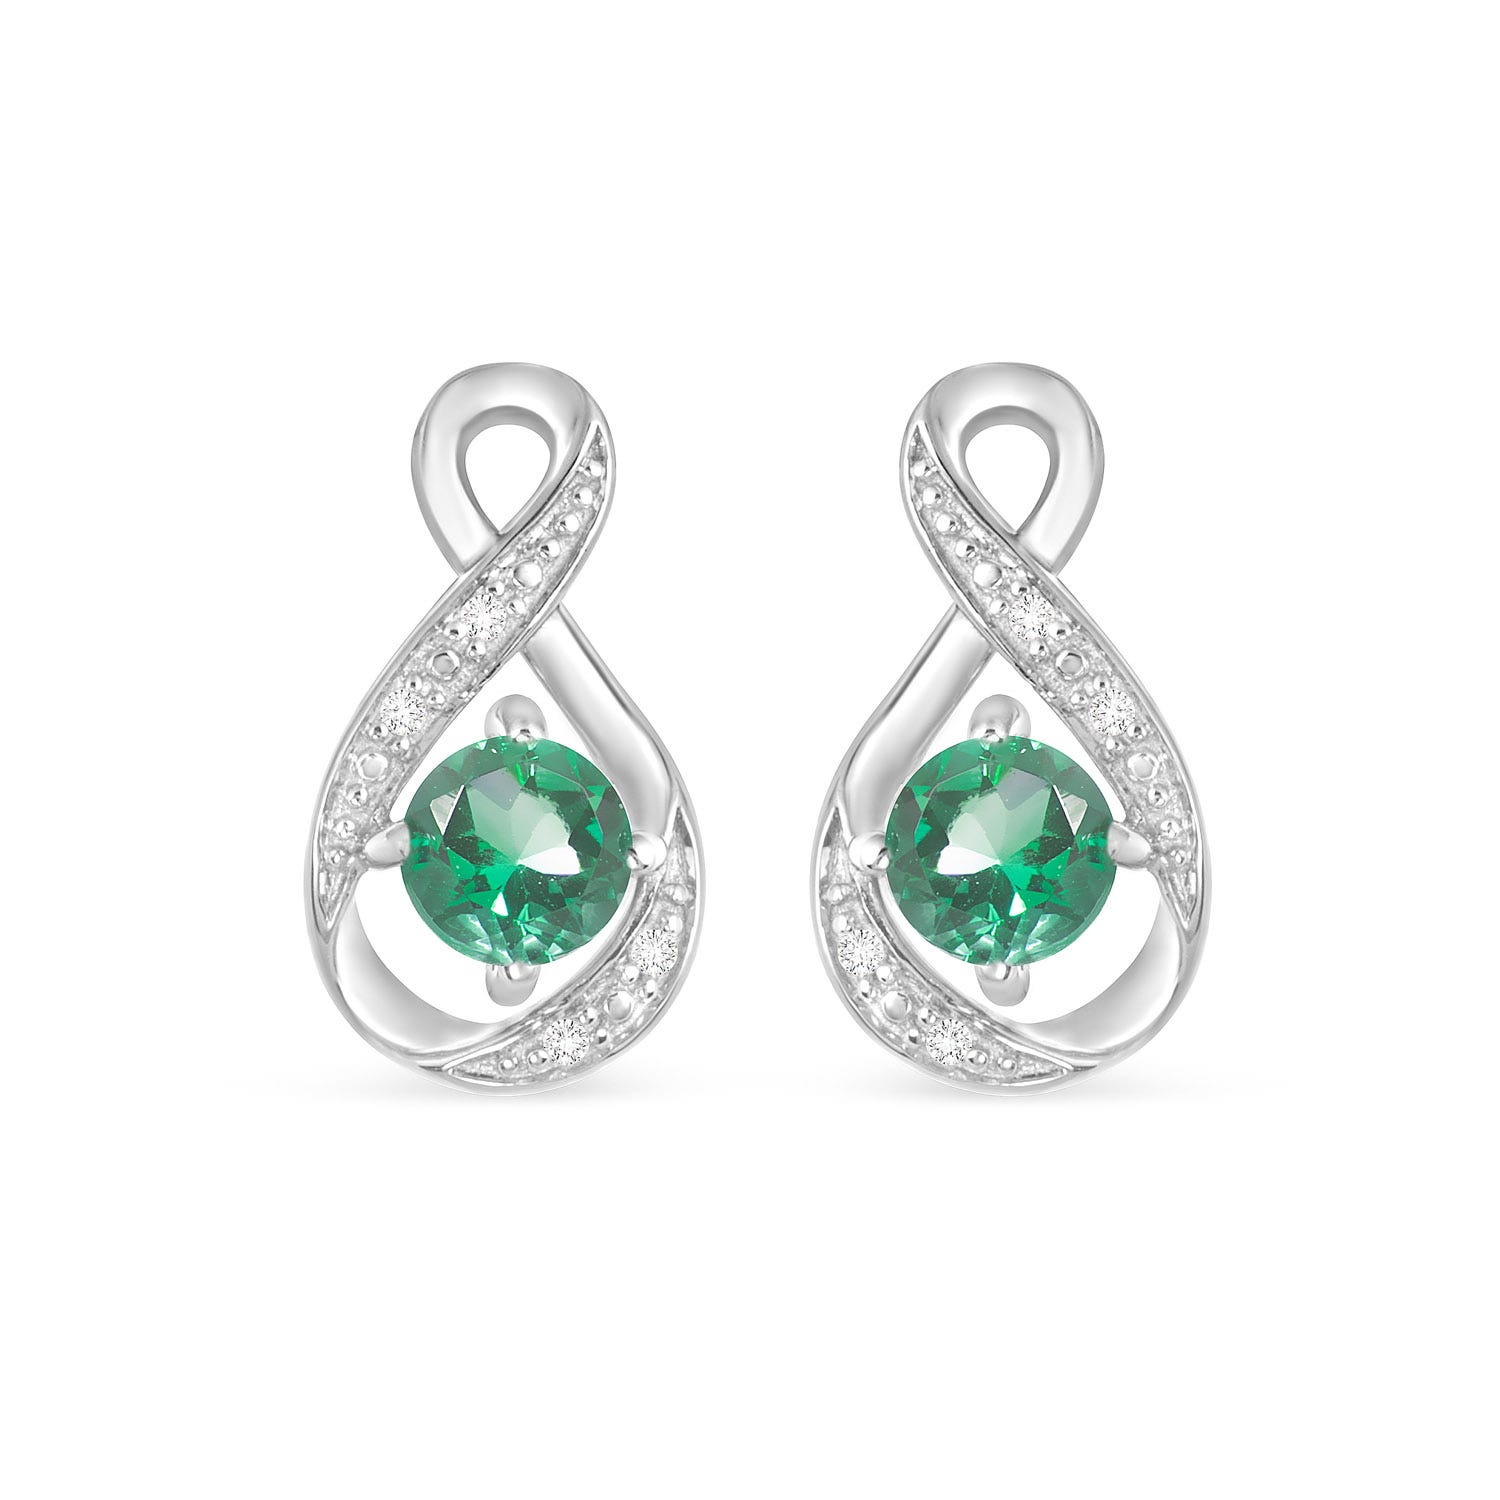 Sterling Silver and Cubic Zirconia May Birthstone Stud Earrings